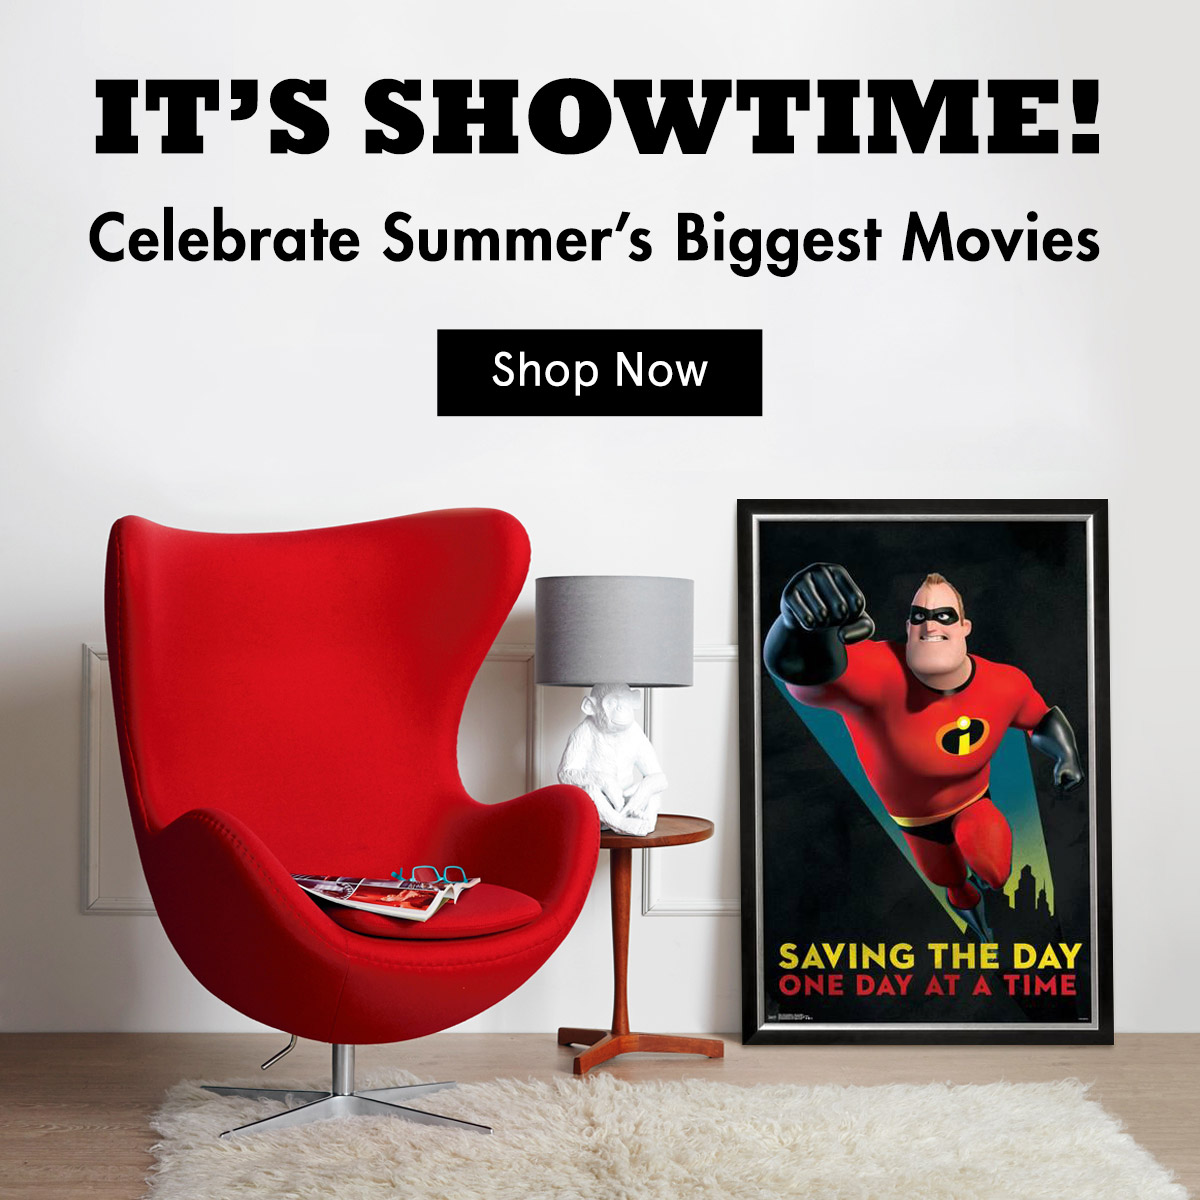 It's Showtime. Celebrate summer's biggest movies. Shop Now